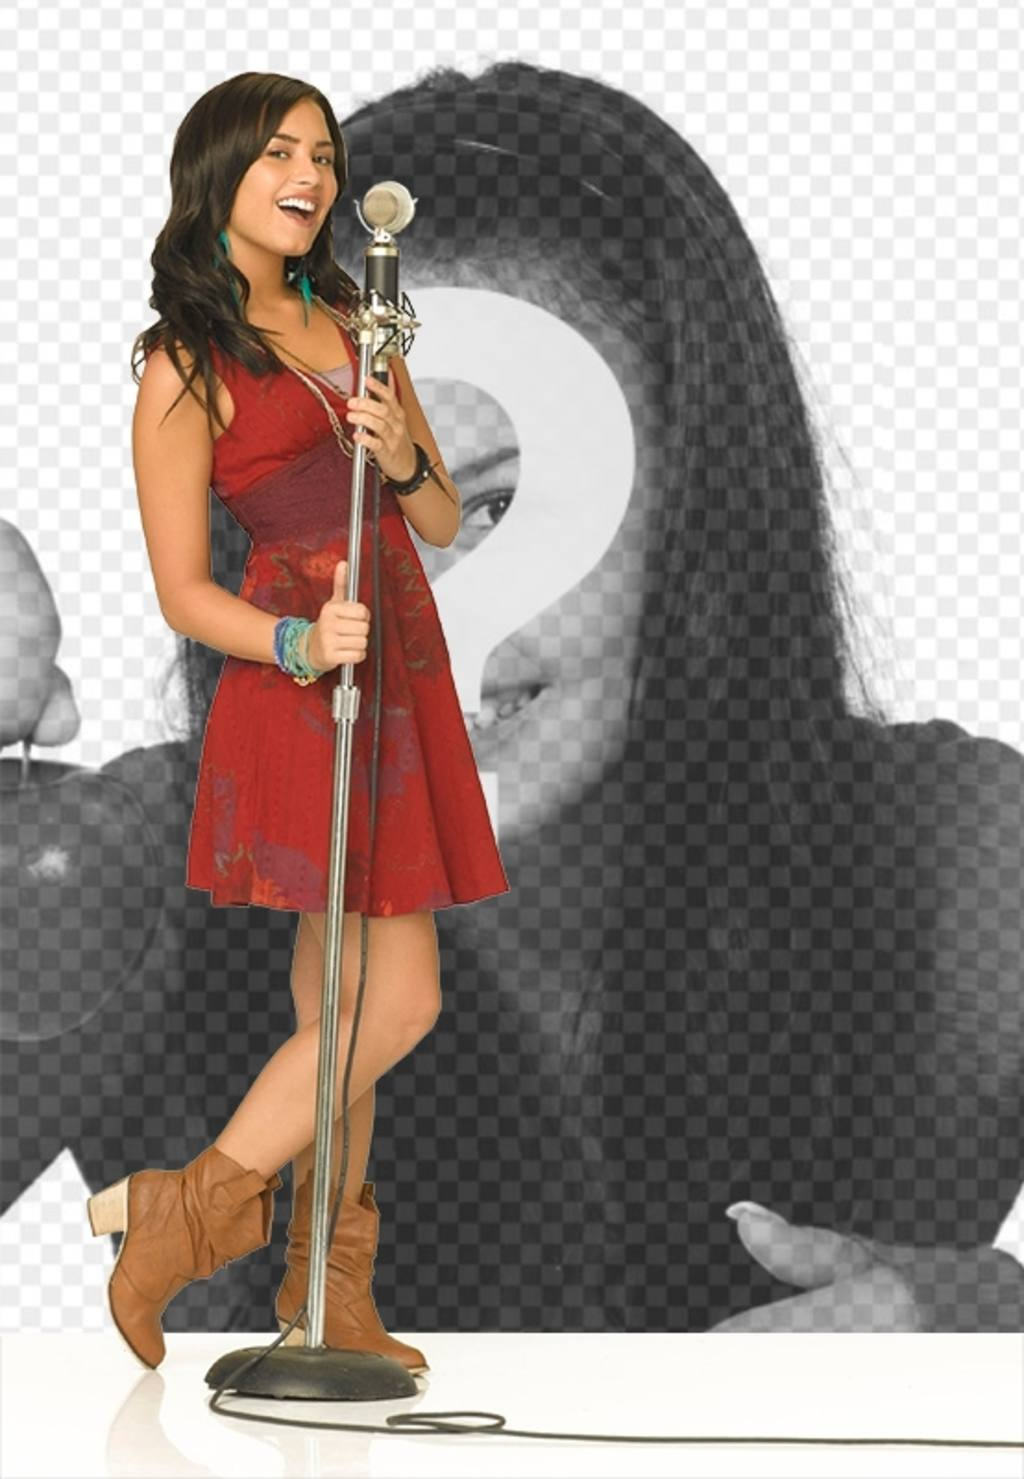 Photomontage of Camp Rock 2 with Demi Lovato singing